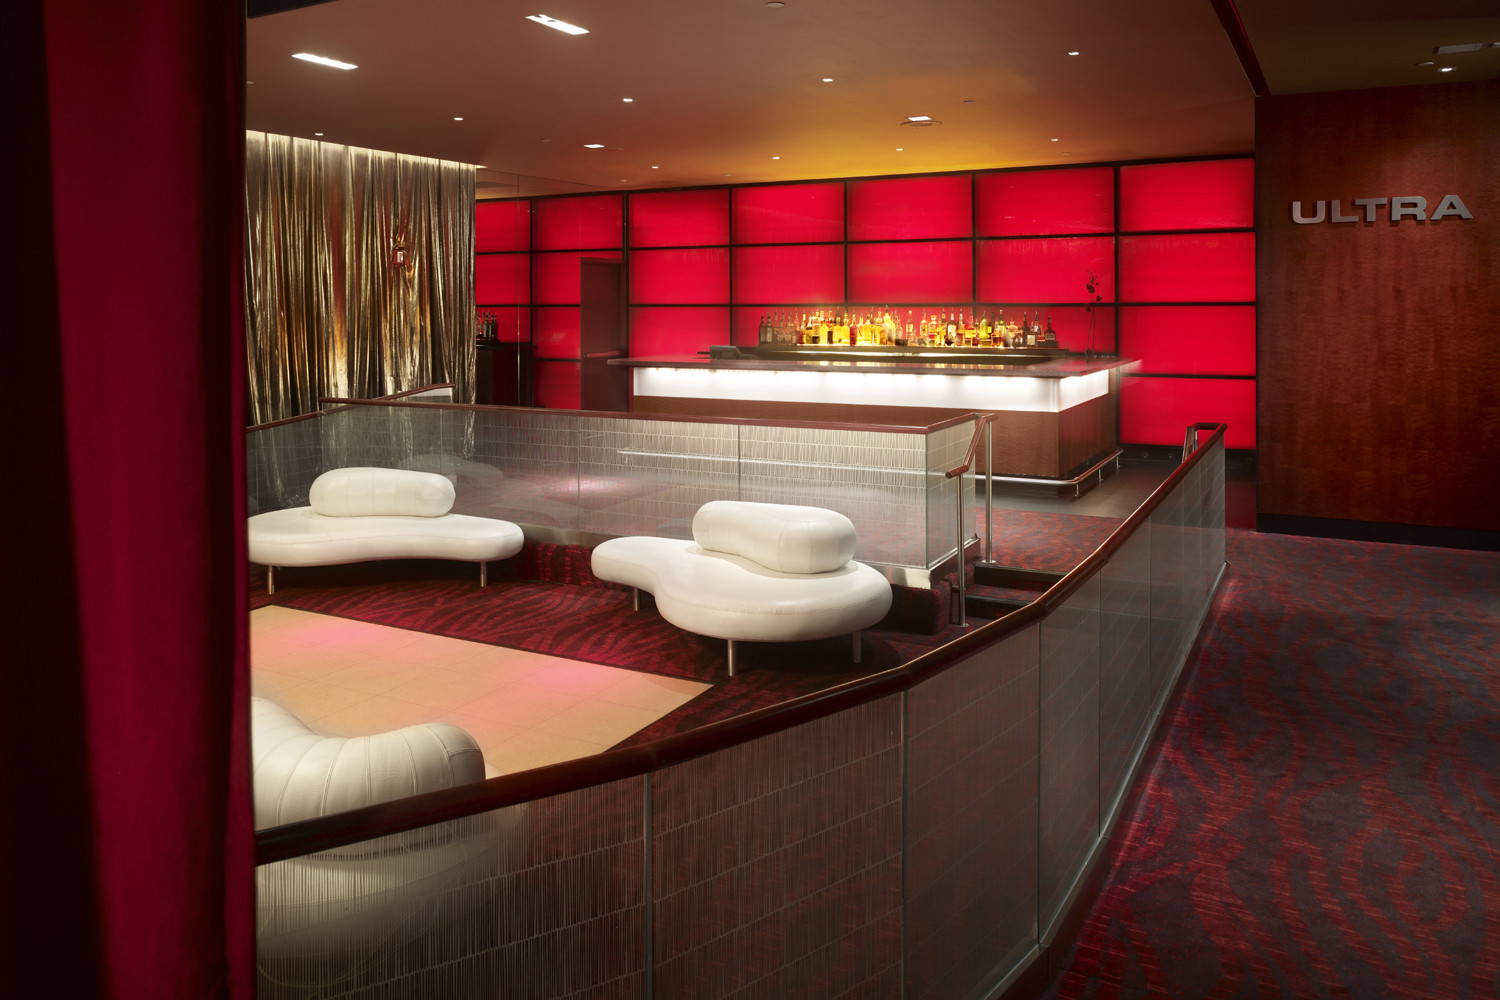 Ultra 88 Nightclub - Entry Lounge